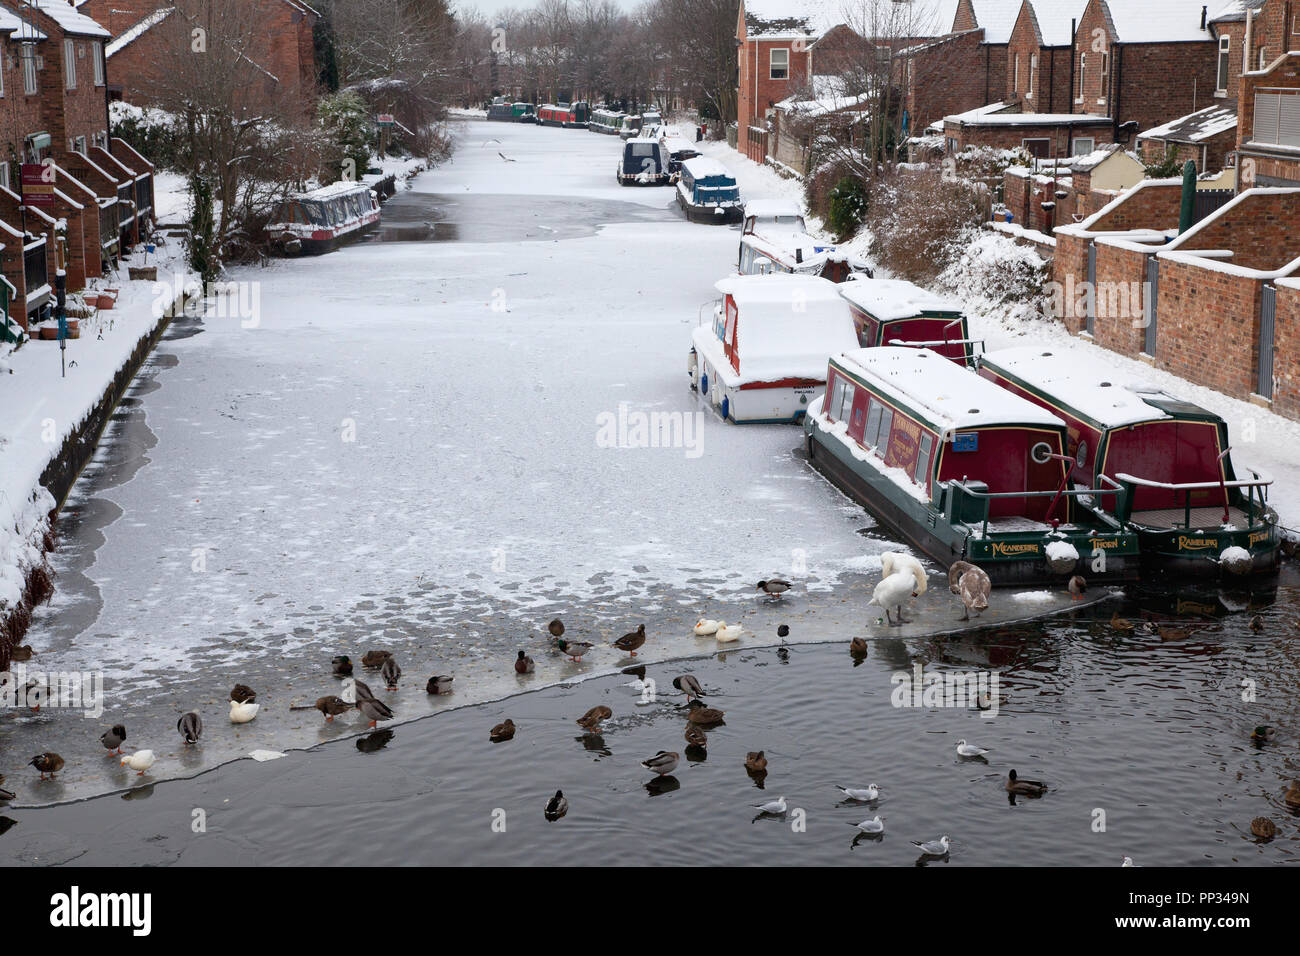 birds-and-narrowboats-on-the-frozen-bridgewater-canal-at-stockton-heath-cheshire-PP349N.jpg